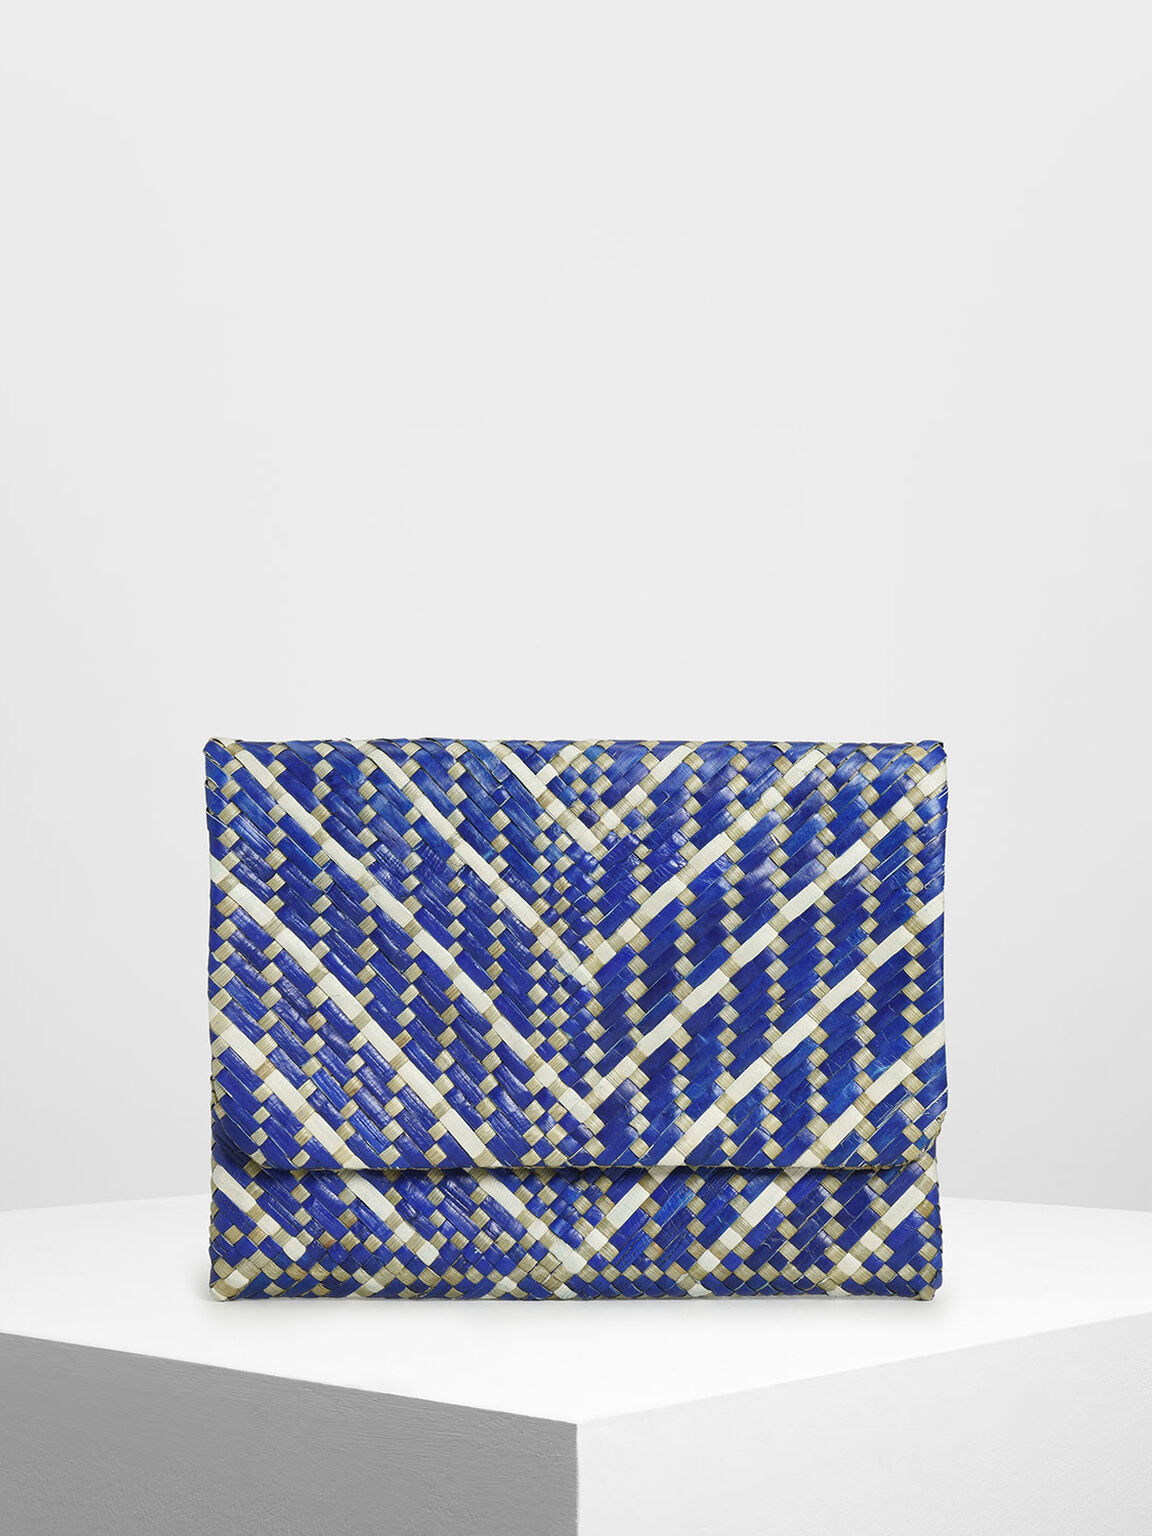 Handwoven Two-Tone Banig Front Flap Clutch, Dark Blue, hi-res